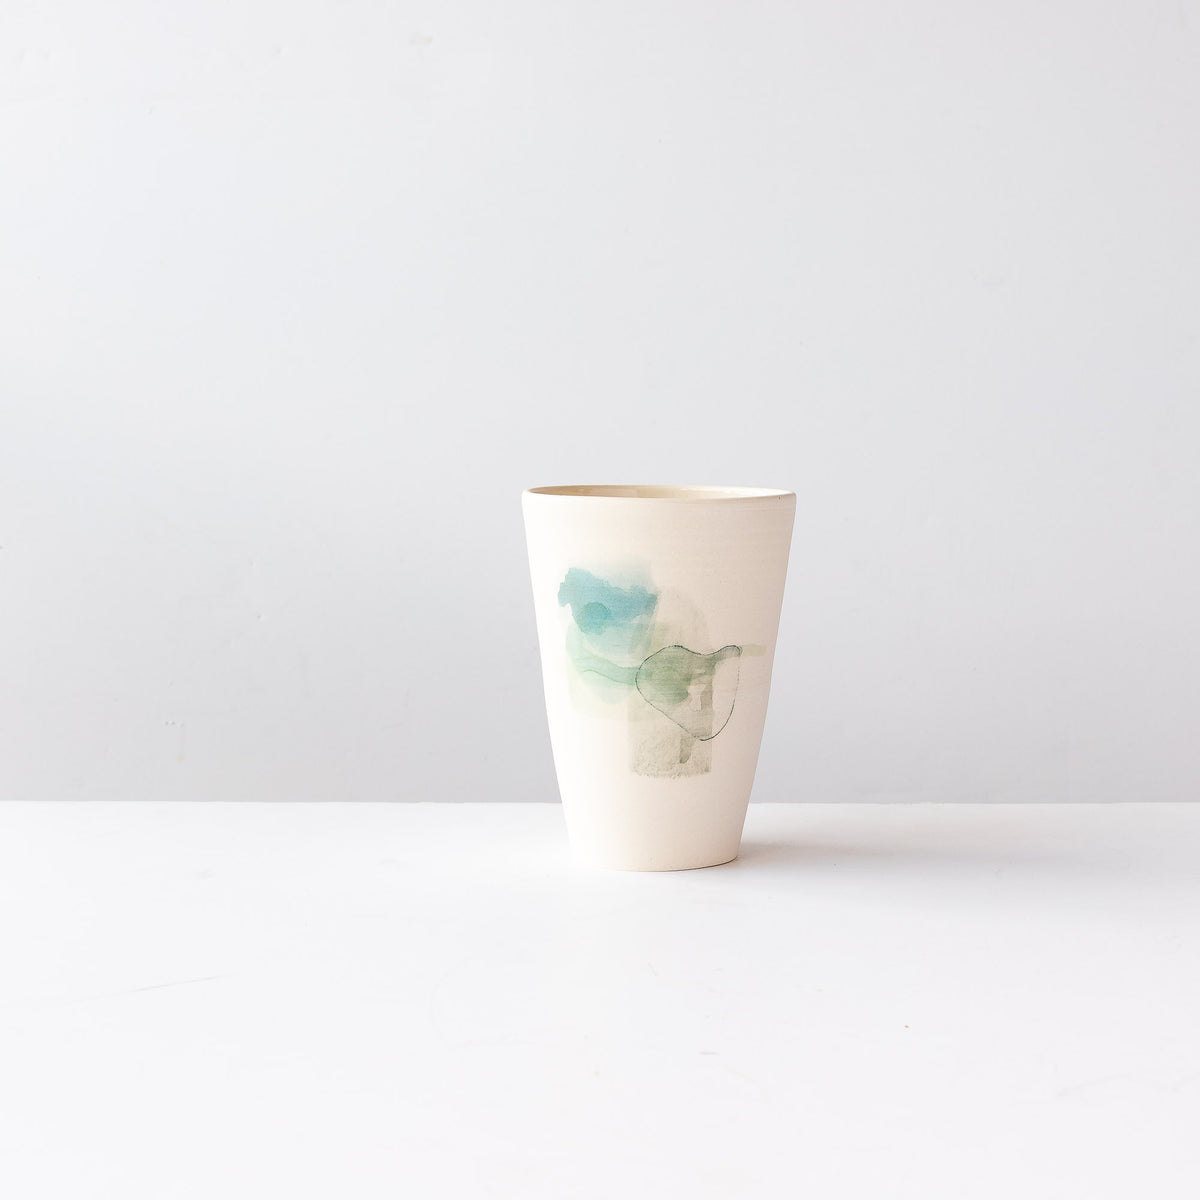 Handmade Porcelain Vase - Sold by Chic & Basta